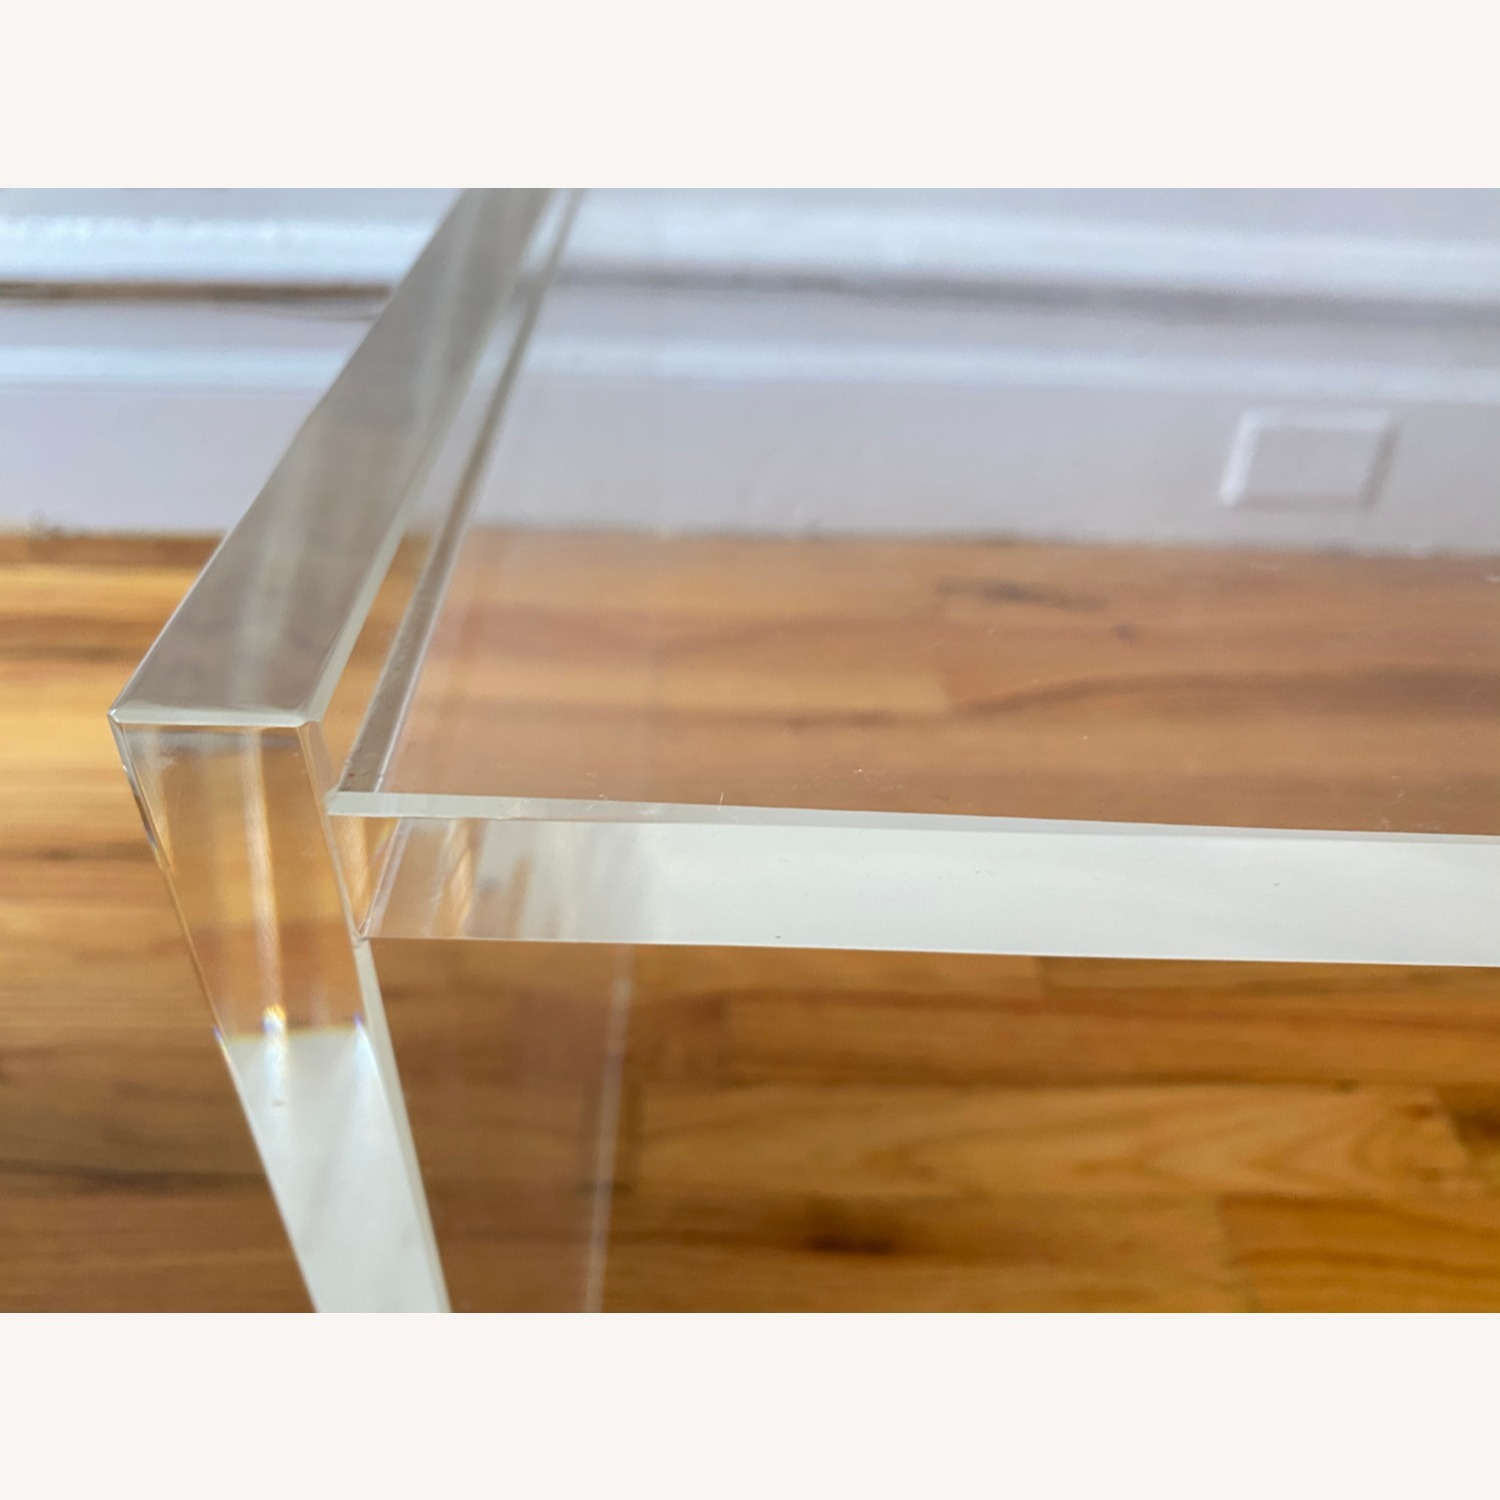 Crate & Barrel Acrylic/Lucite Coffee Table - image-1